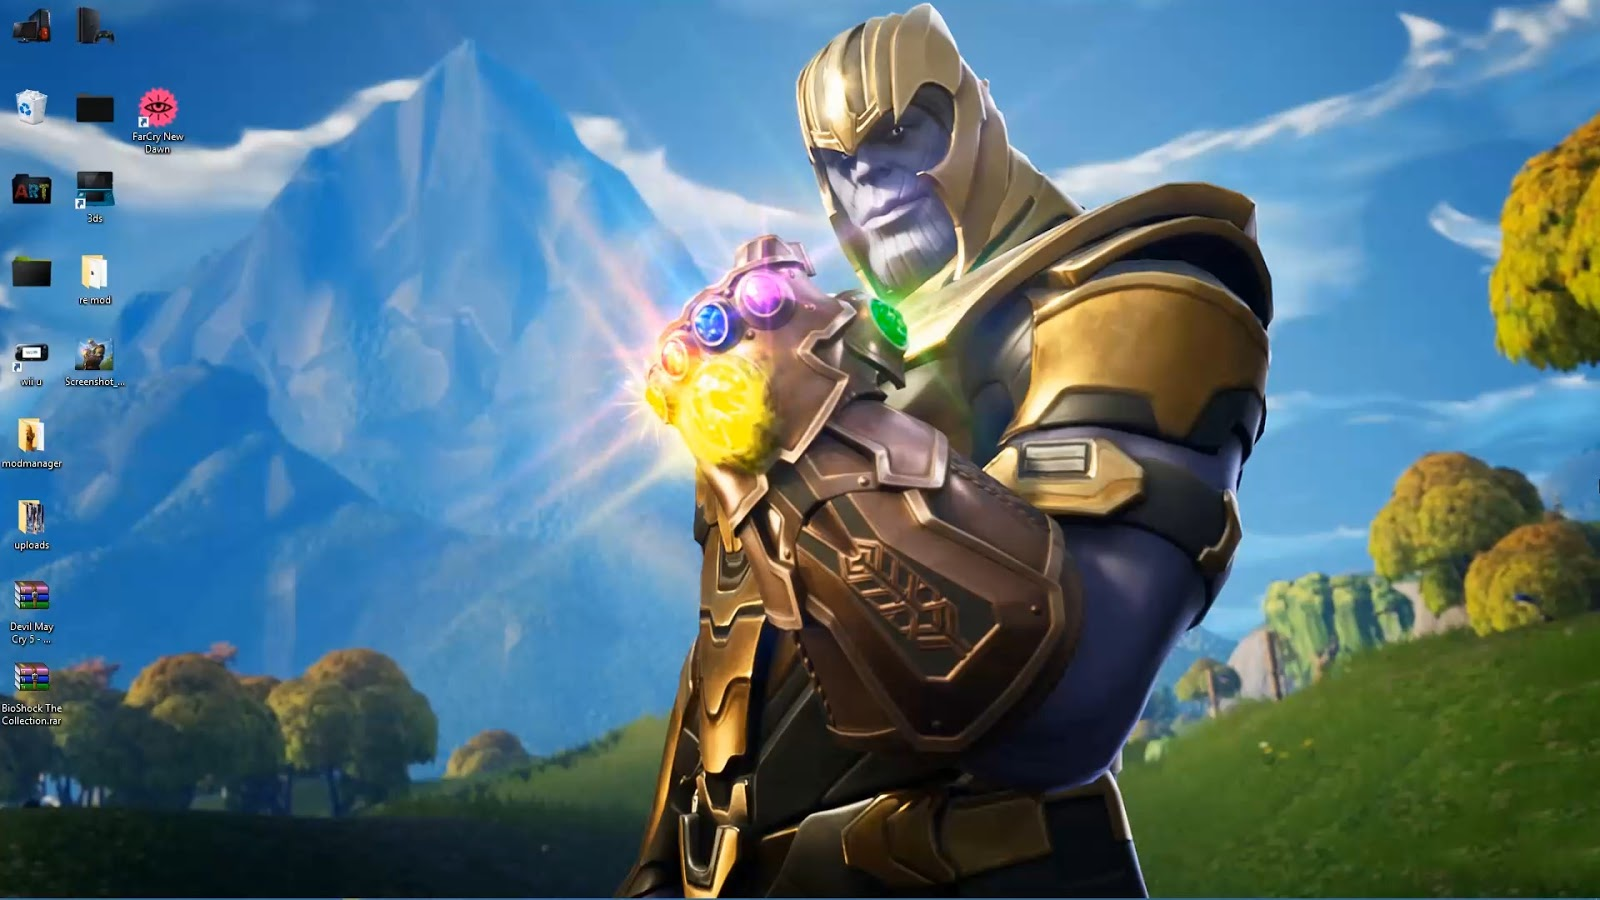 Wallpaper Engine Thanos In Fortnite Live Wallpaper Pc And Phone Free Download